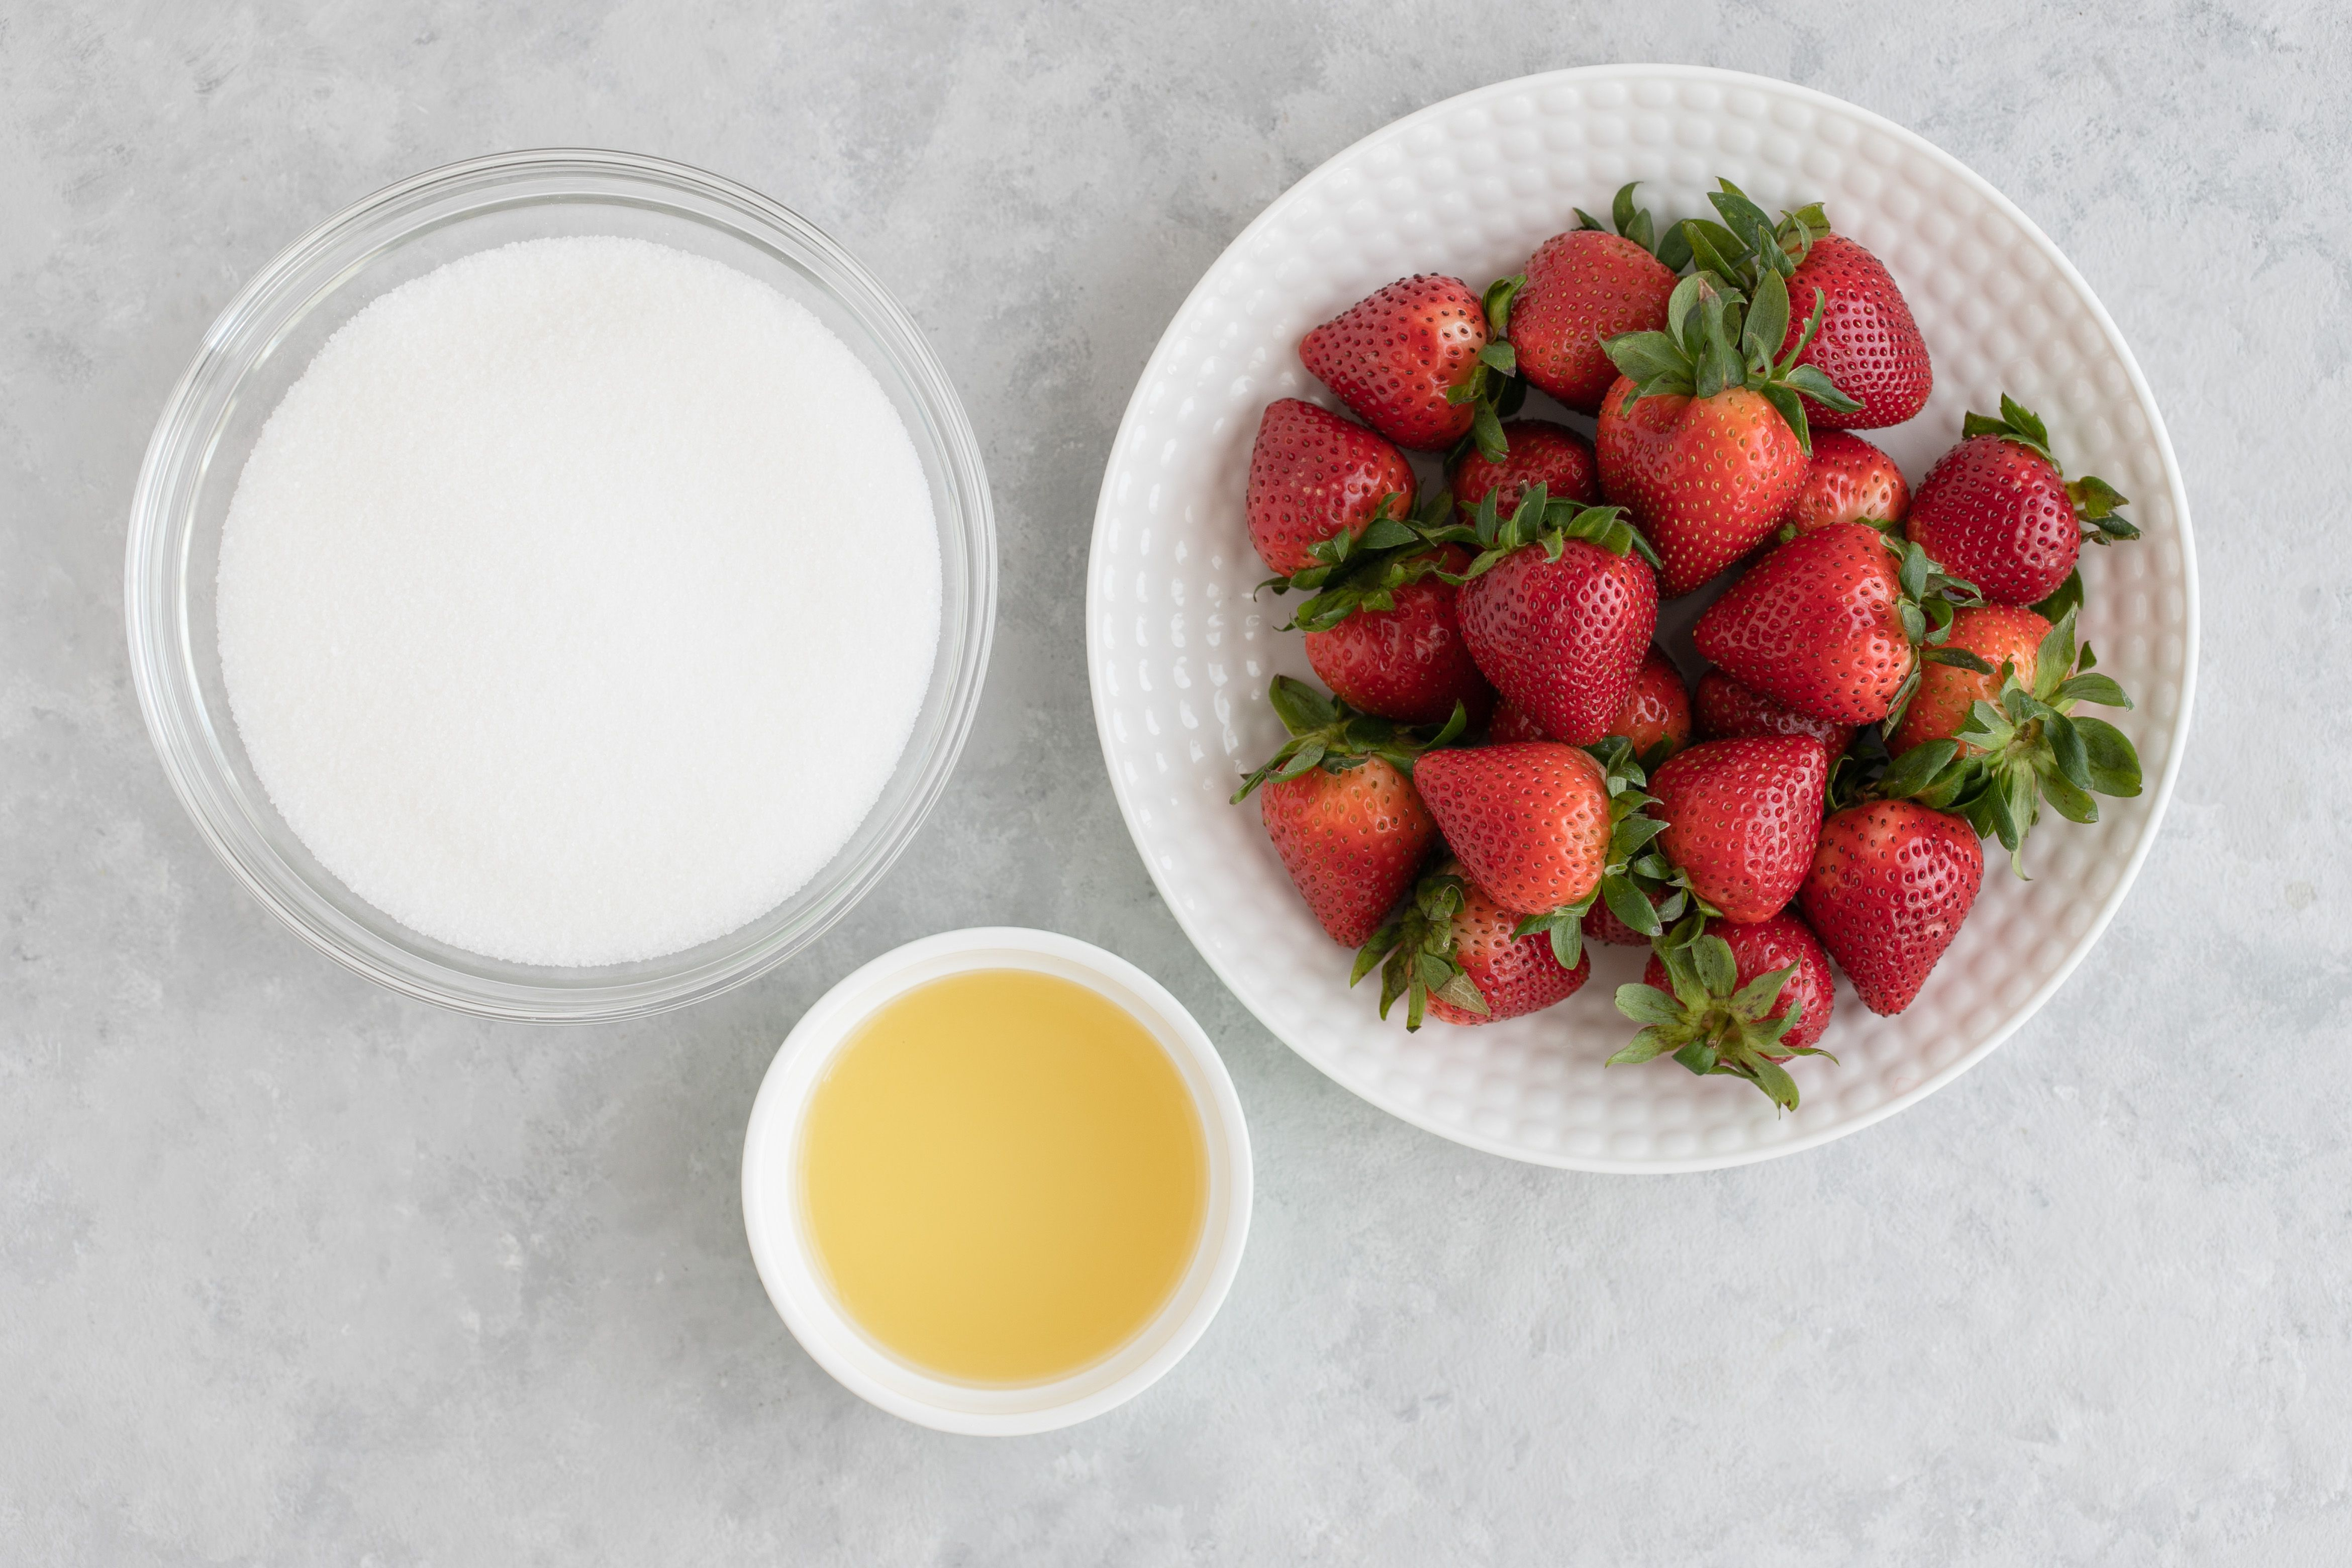 Ingredients for strawberry preserves